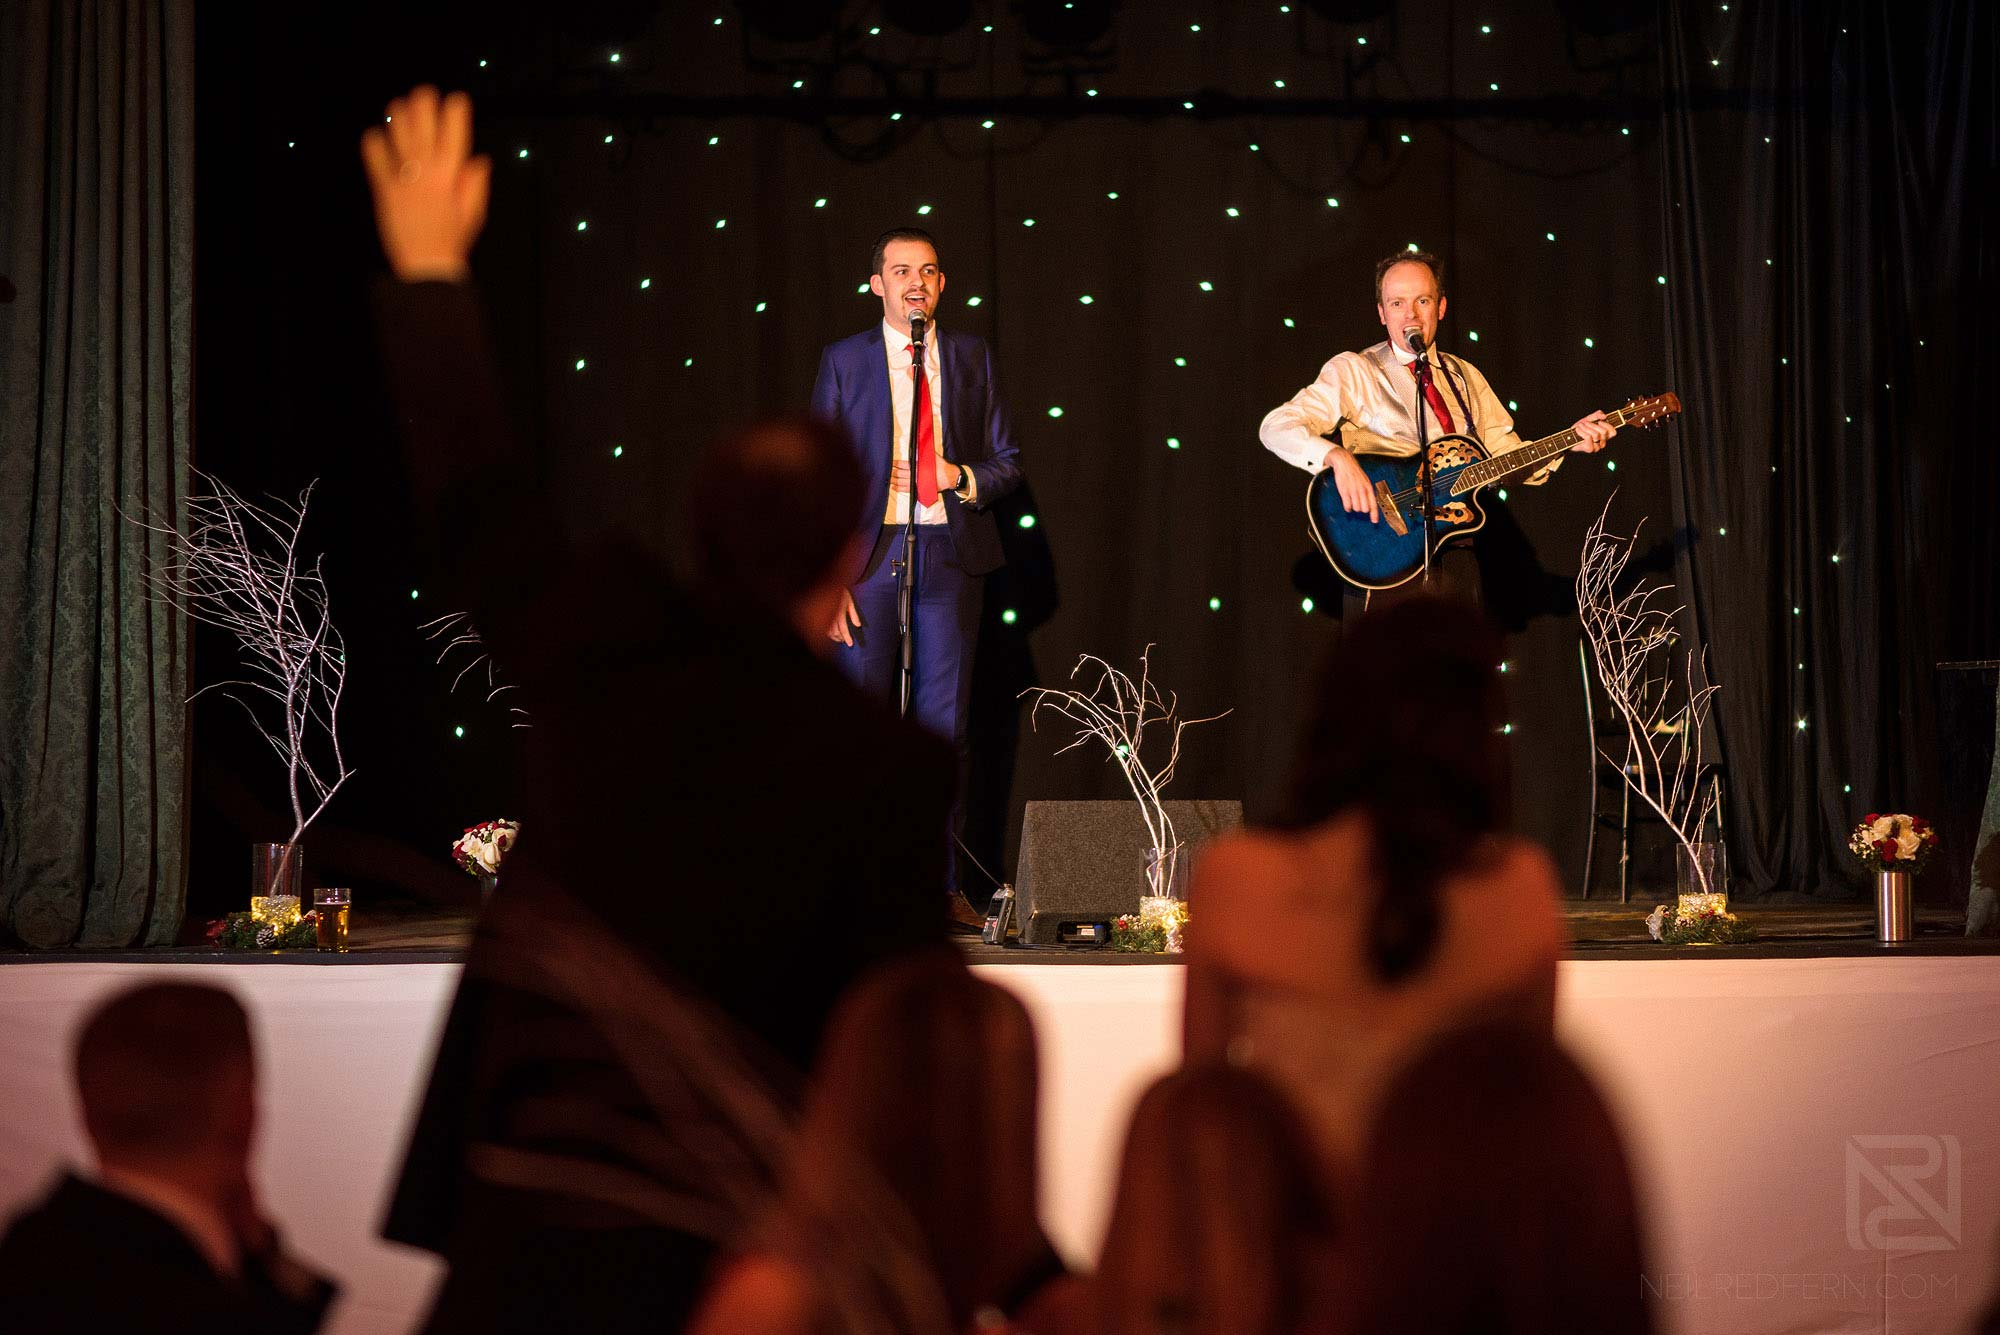 musicians onstage at wedding at The Bowdon Rooms